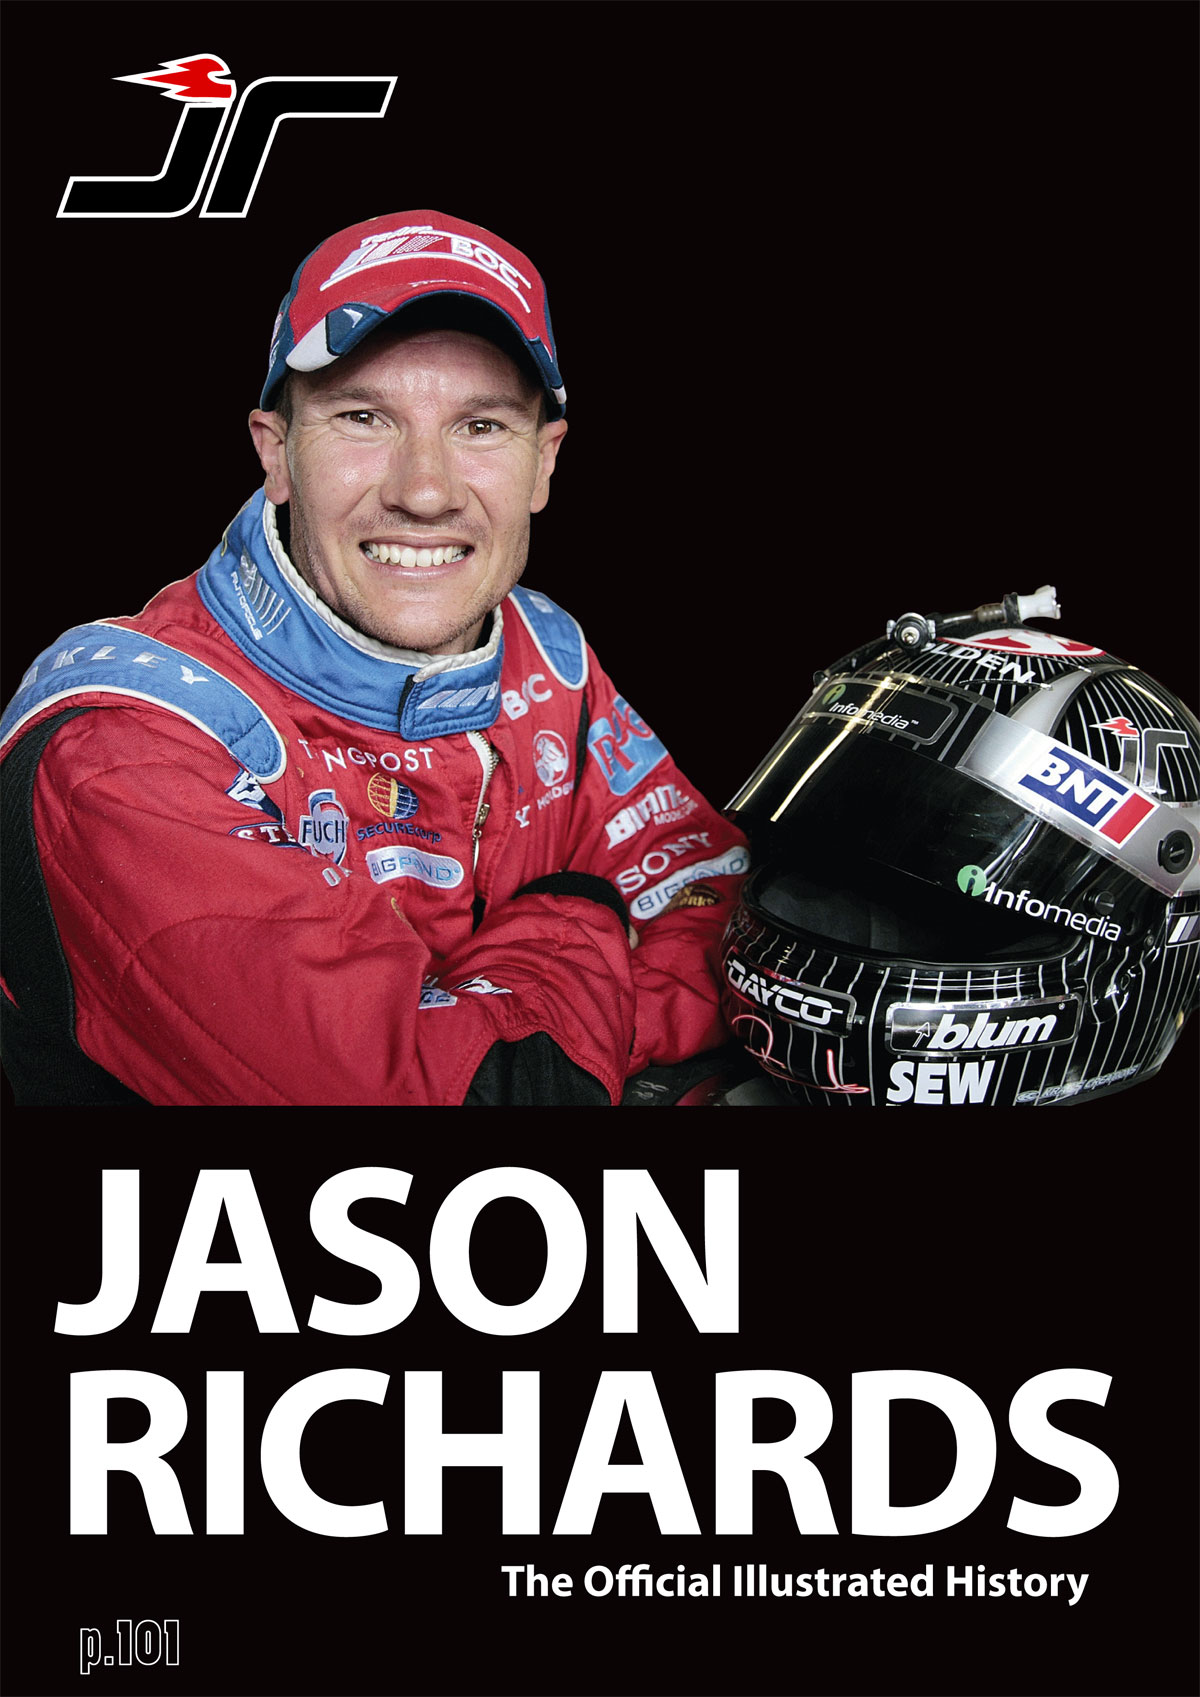 Jason Richards